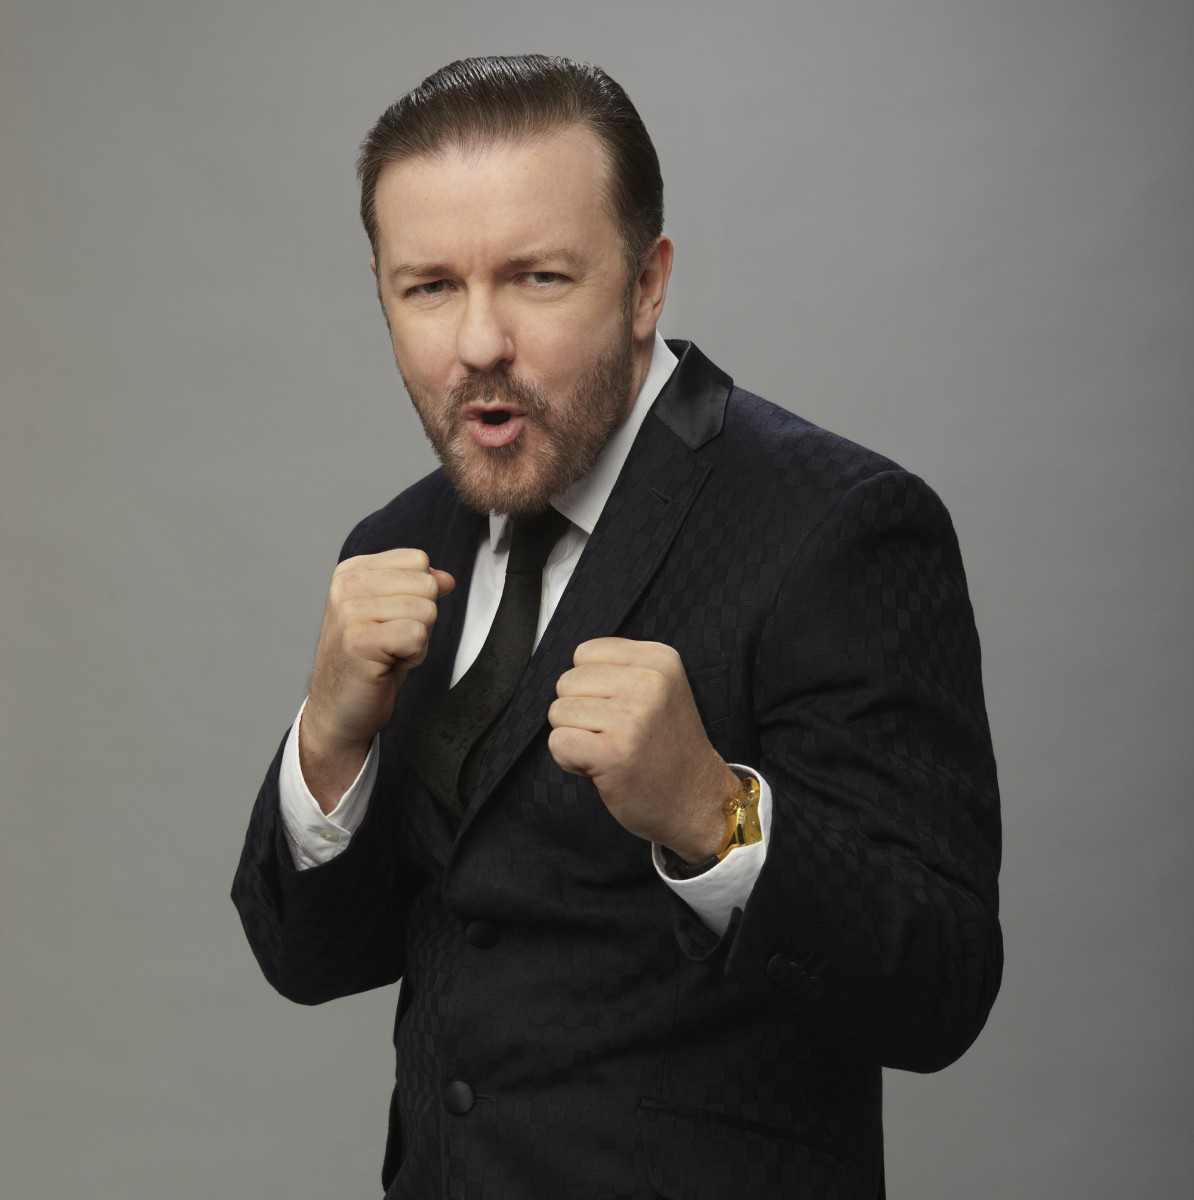 Ricky Gervais Photo